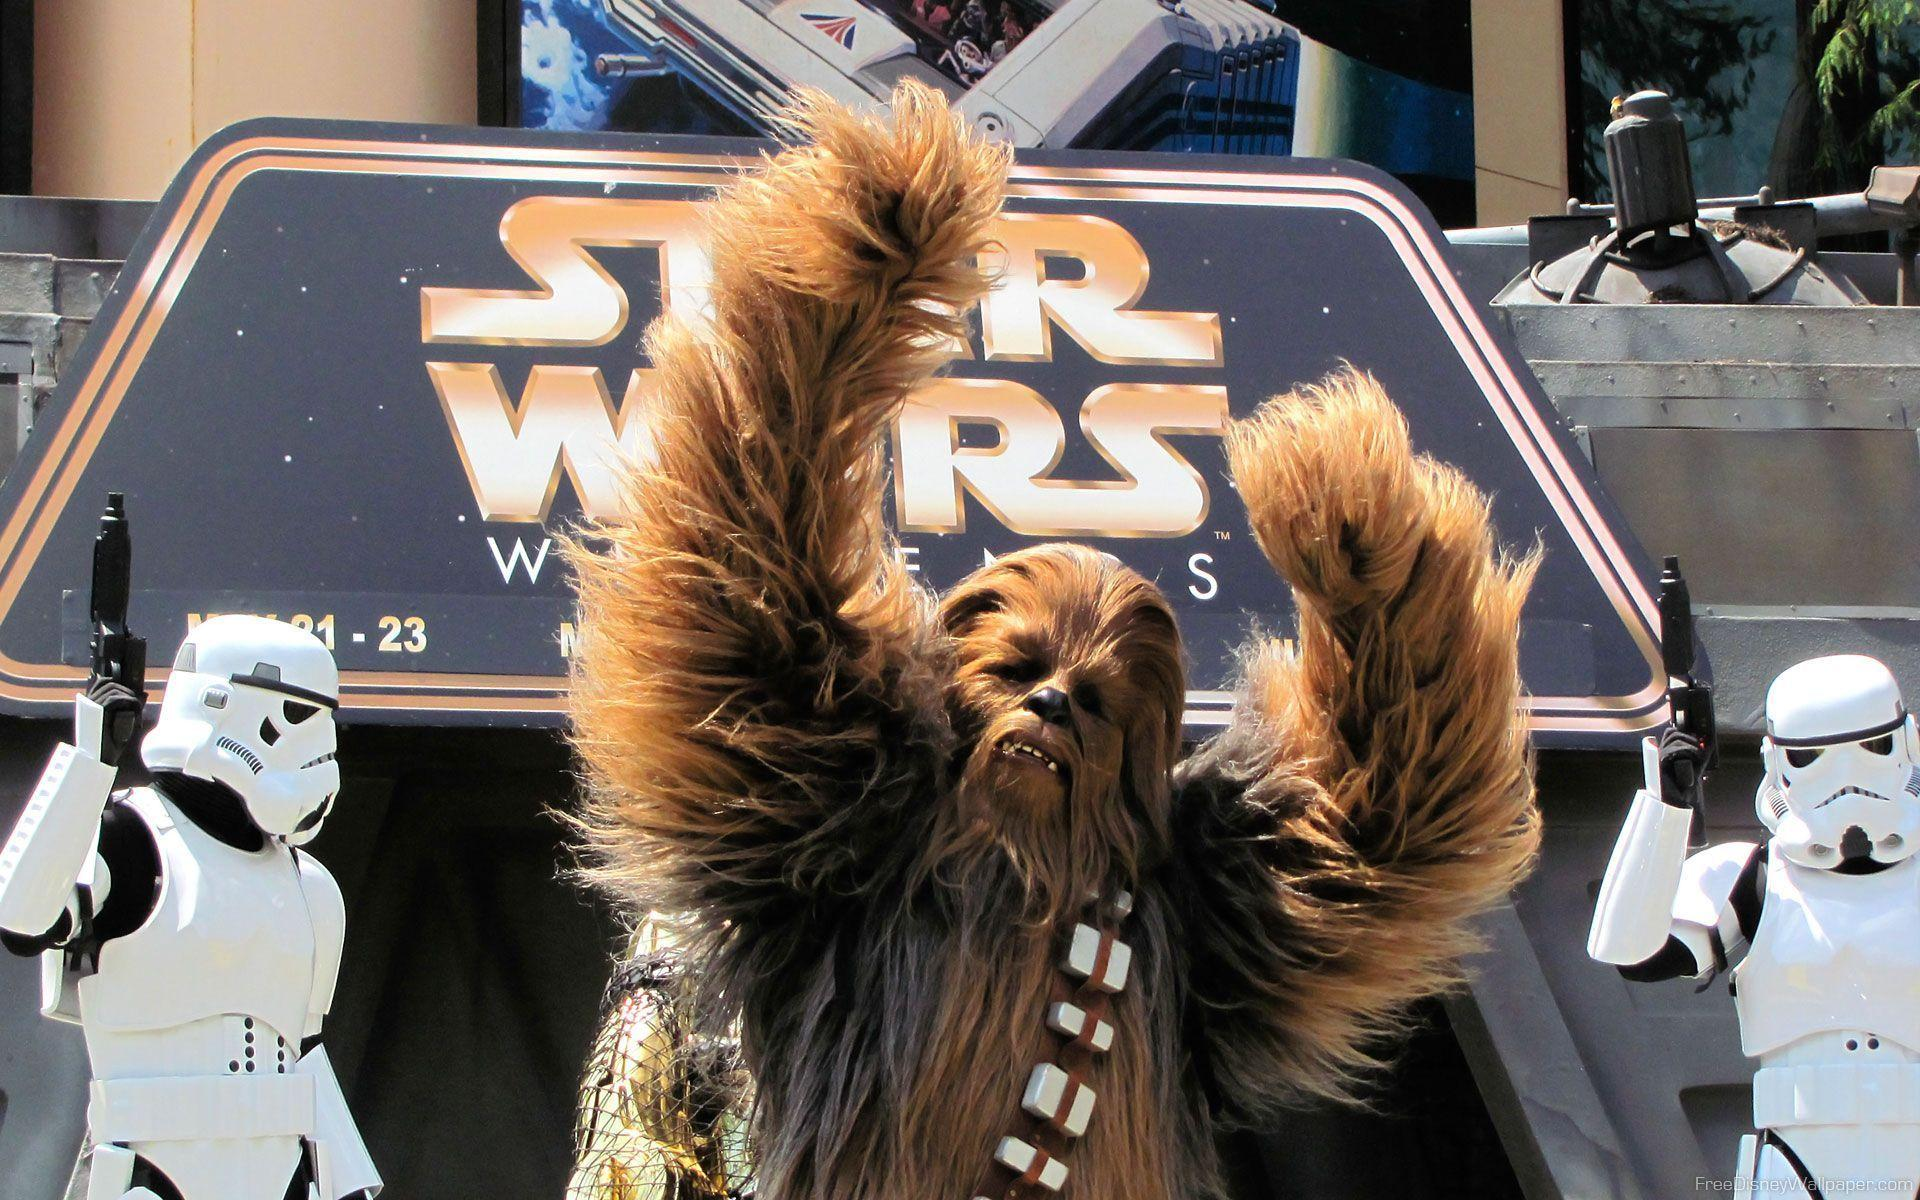 star wars chewbacca wallpaper - photo #12